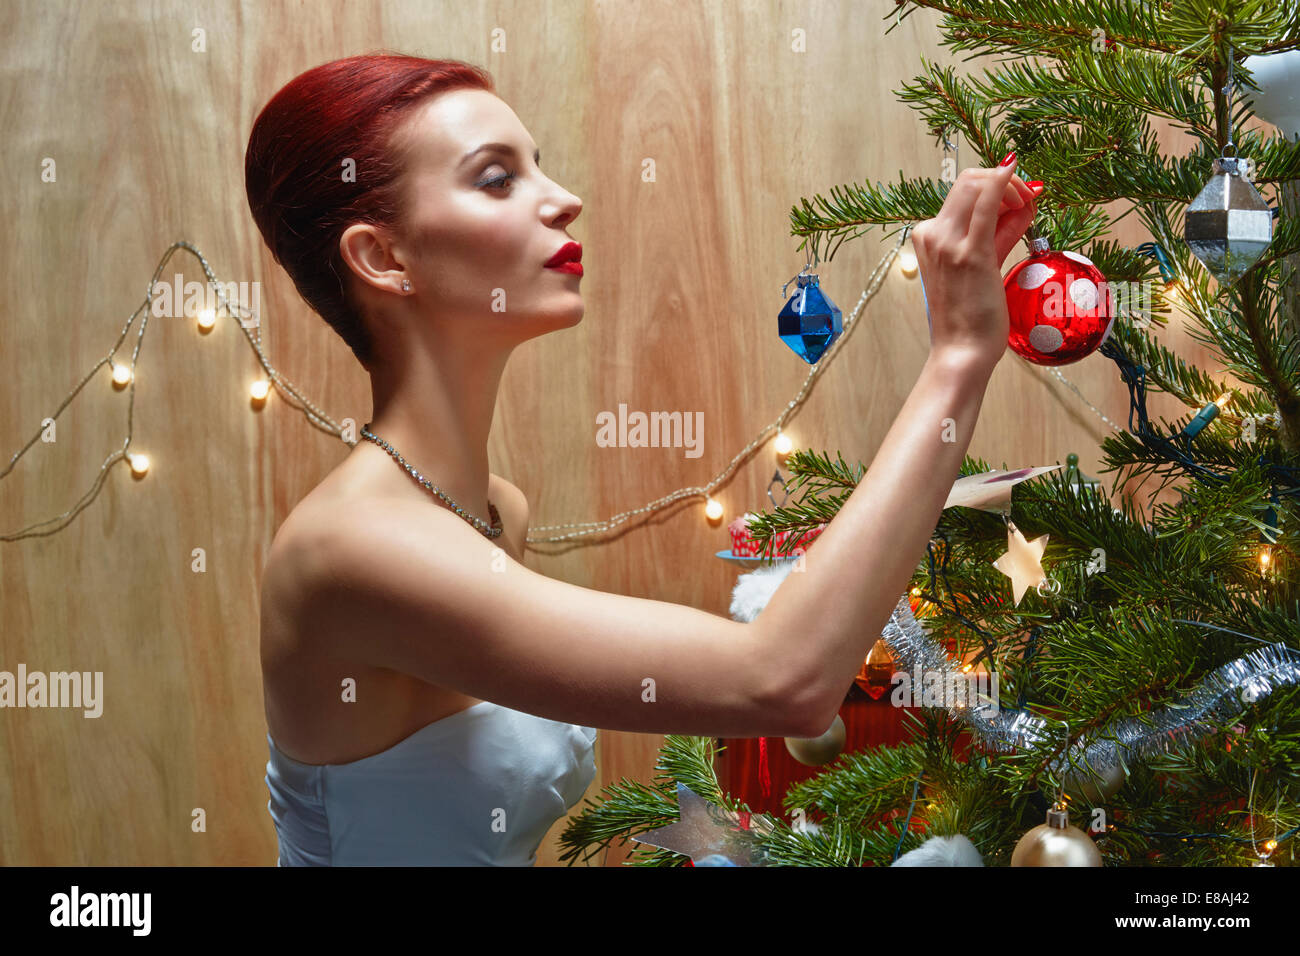 Woman decorating Christmas tree - Stock Image